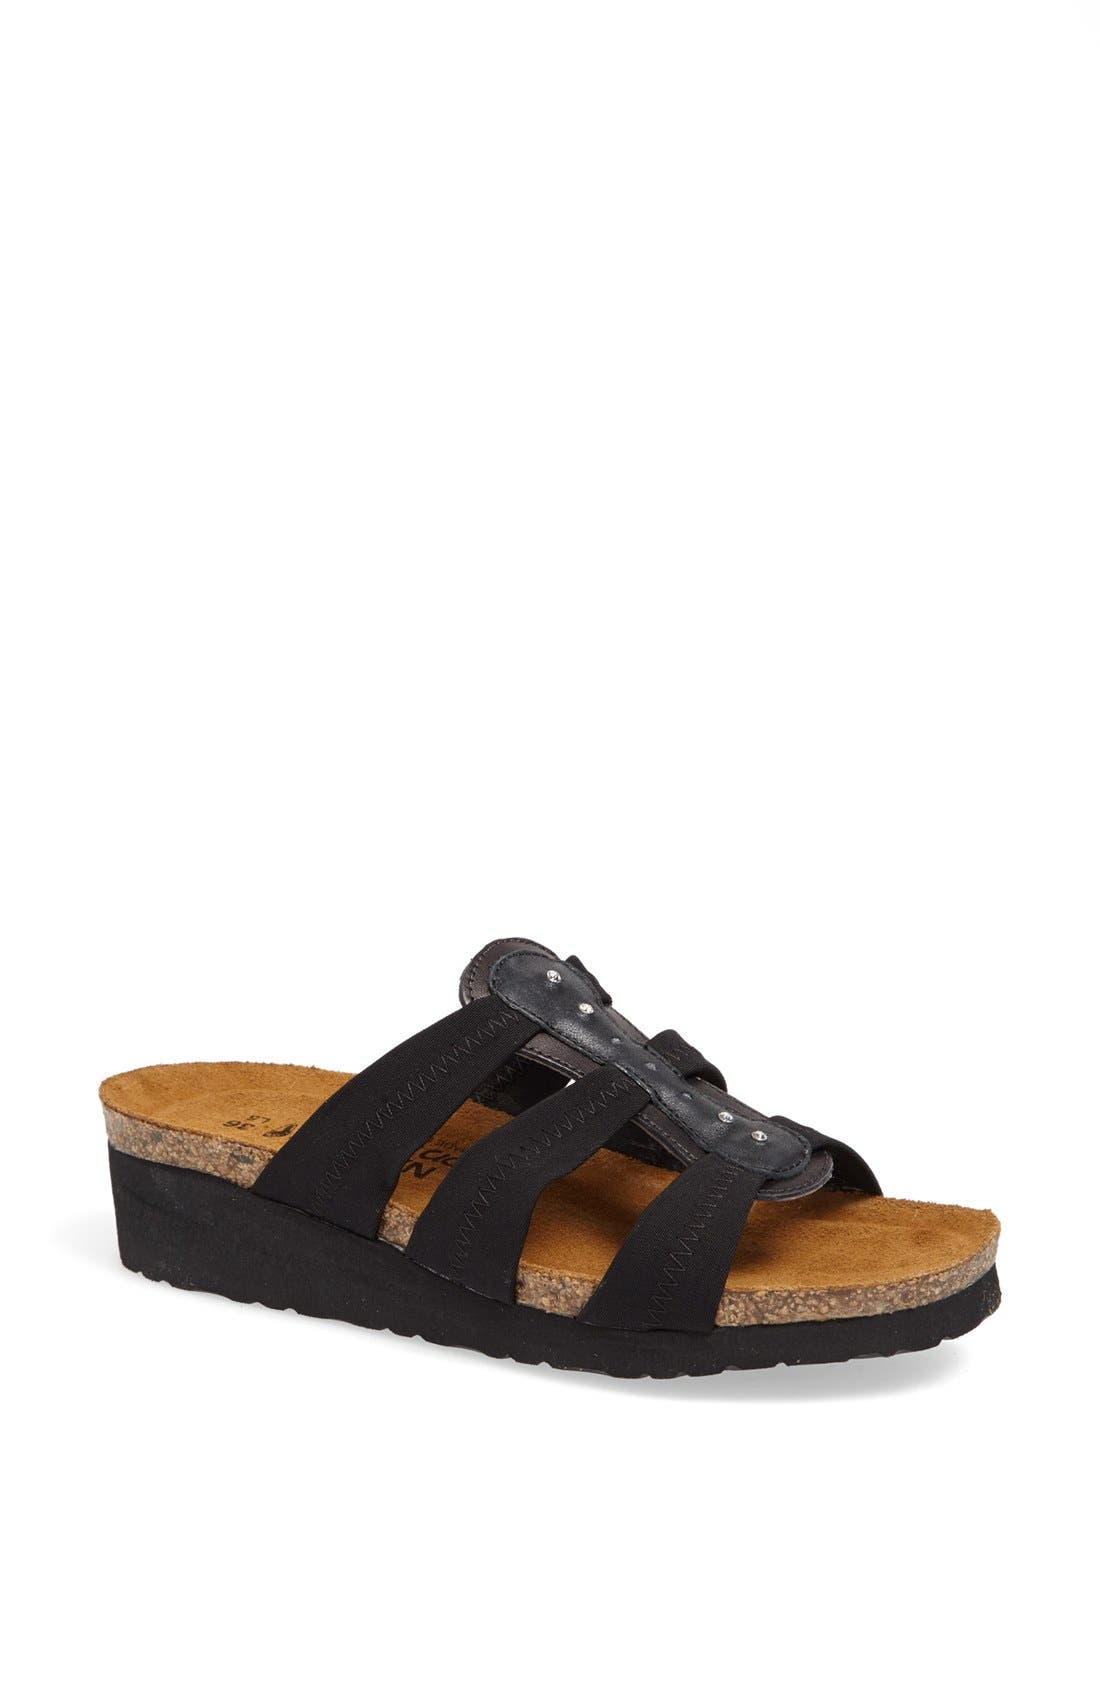 'Brooke' Sandal,                         Main,                         color, BLACK